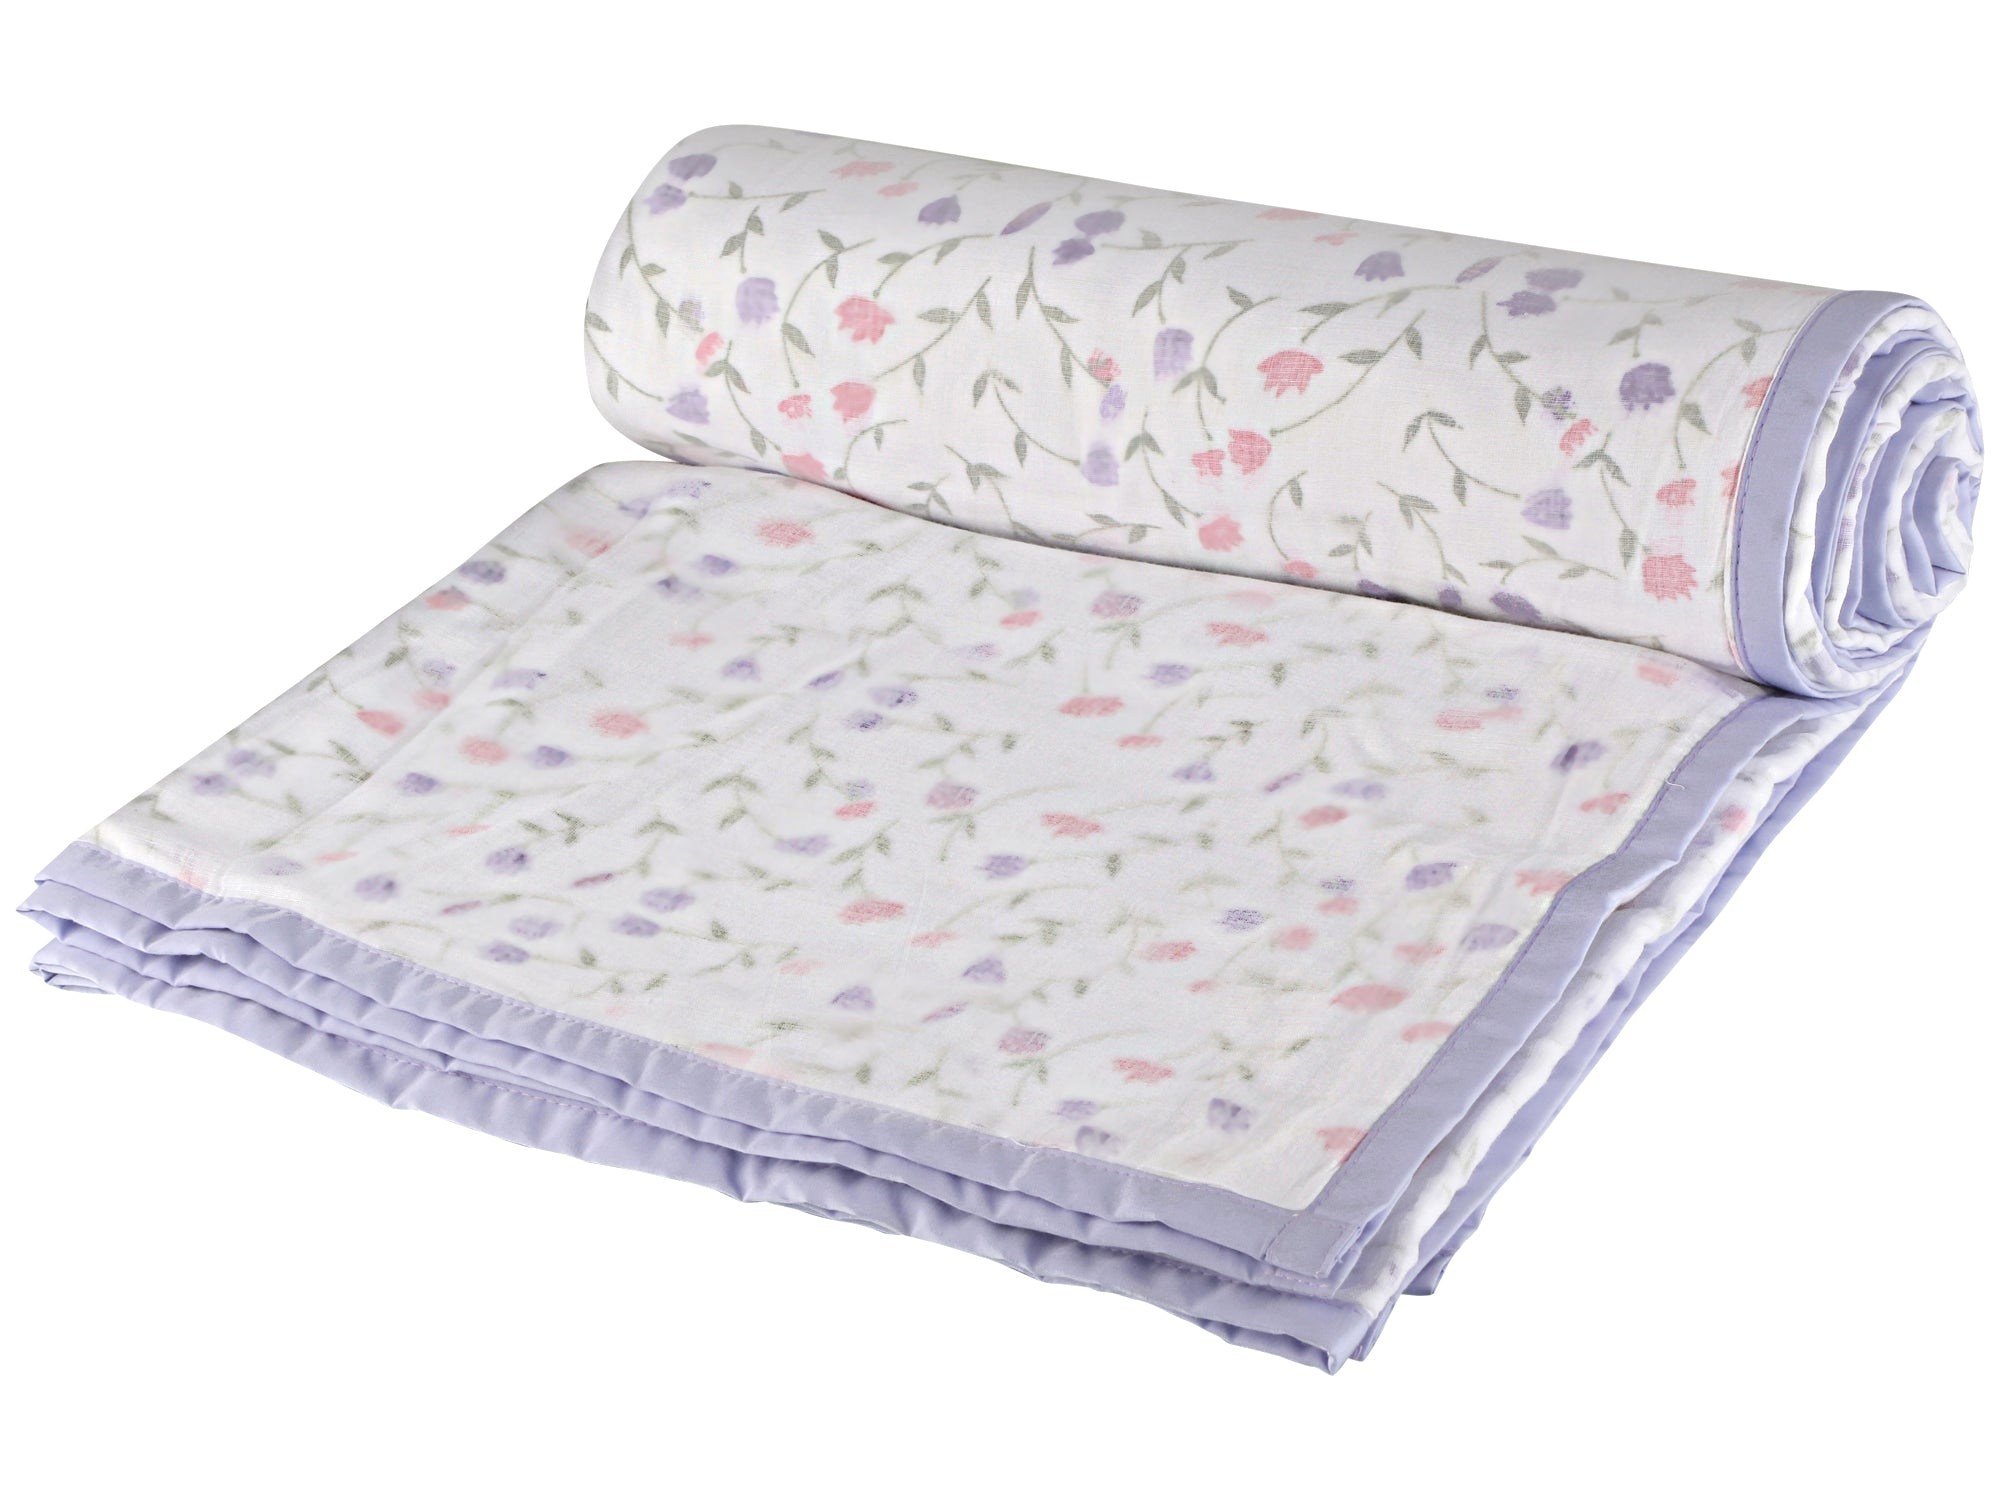 Purple Floral Cotton Single Dohar - II (88 x 58 inches)